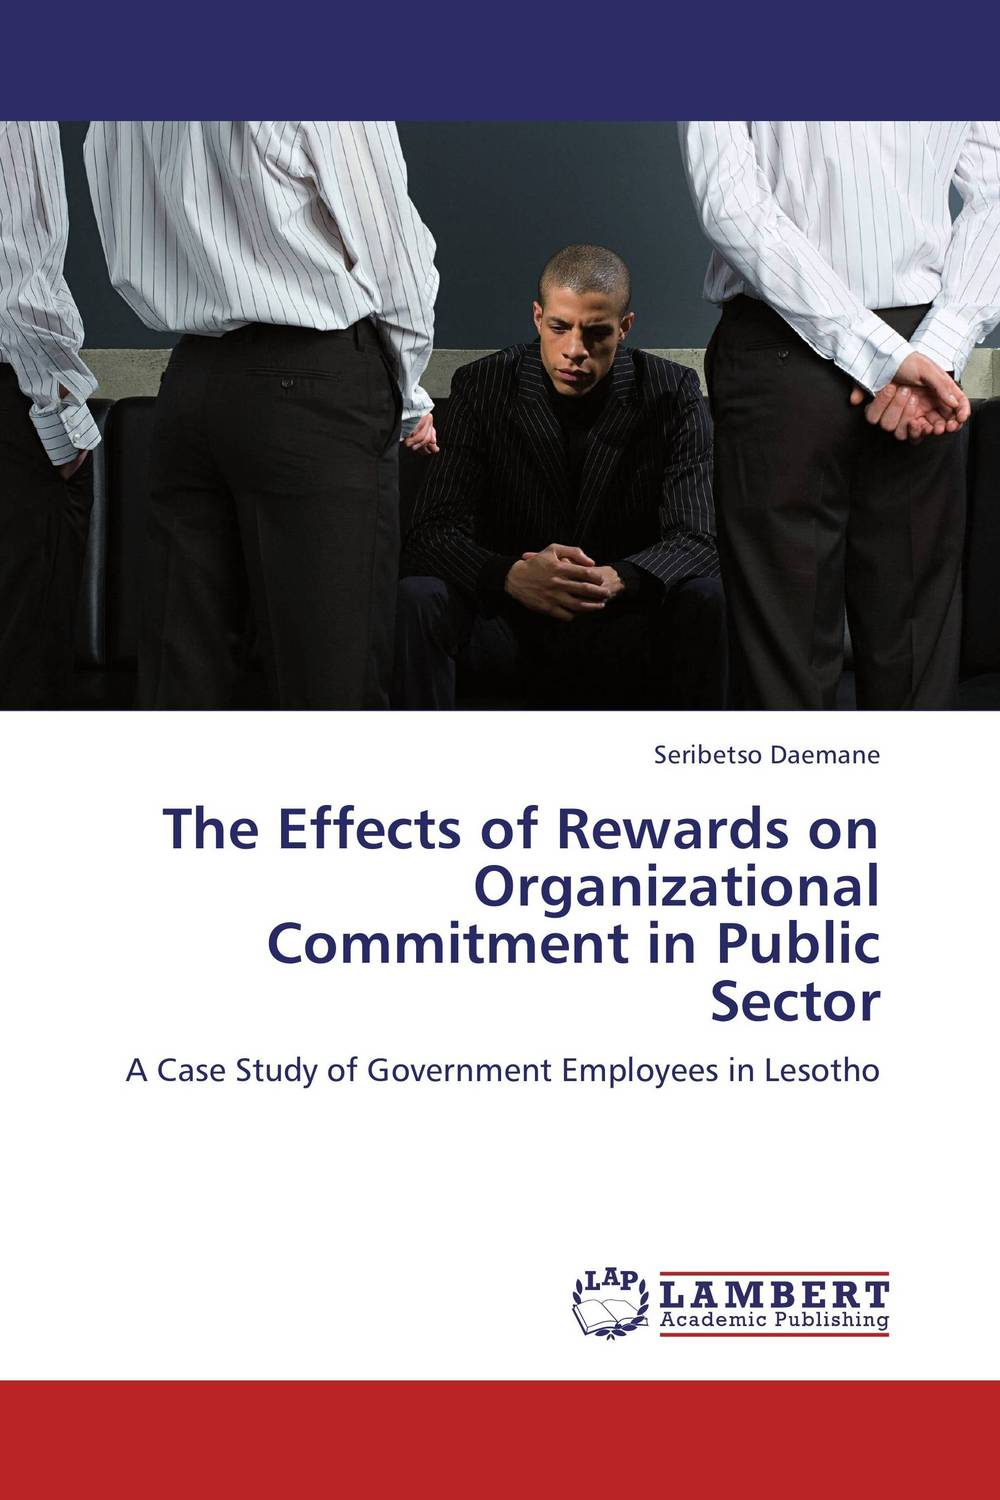 The Effects of Rewards on Organizational Commitment in Public Sector jeff m conte wiley s introduction to industrial and organizational psychology